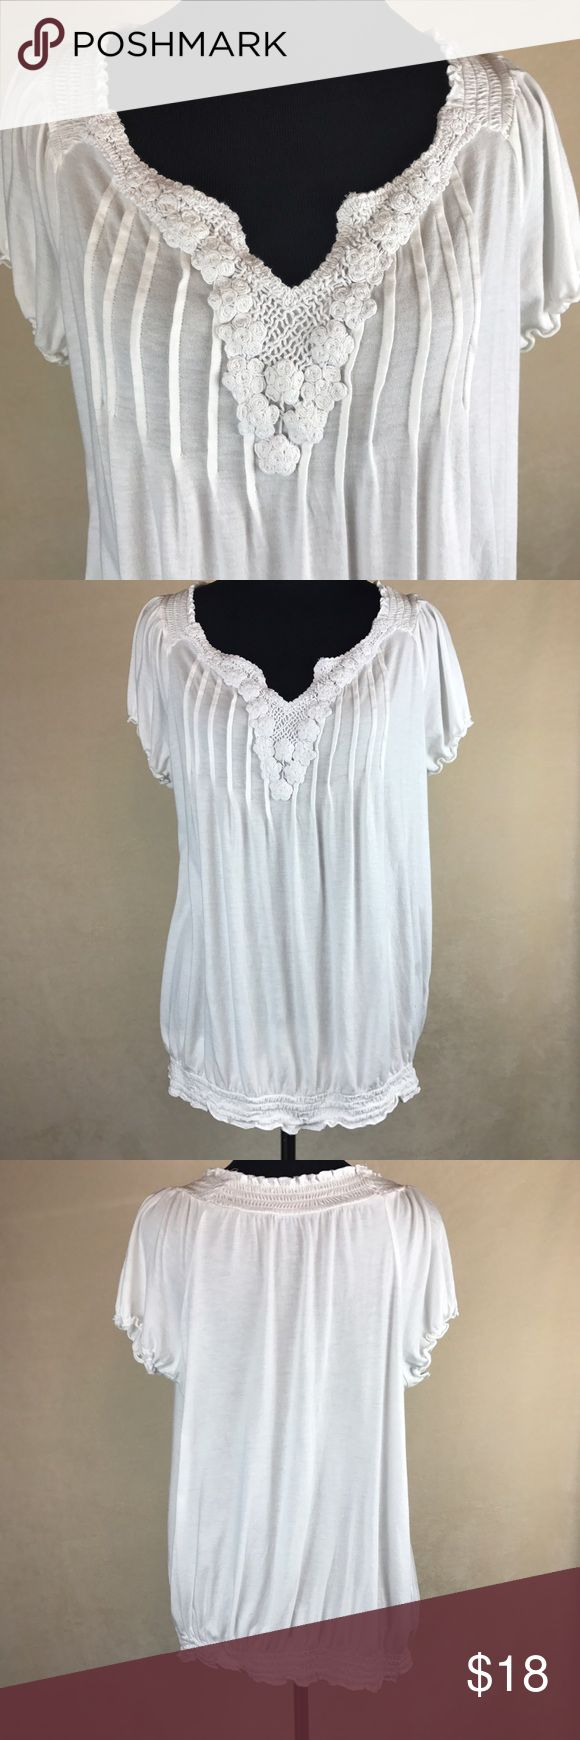 """Lane Bryant white peasant blouse top Lane Bryant women's size 14 16 peasant blouse in white. Floral embroidery type designs at neckline. V neck. Gently used. No flaws. Measurements while laying flat are armpit to armpit: 21"""" length: 26"""". Lane Bryant Tops Blouses"""